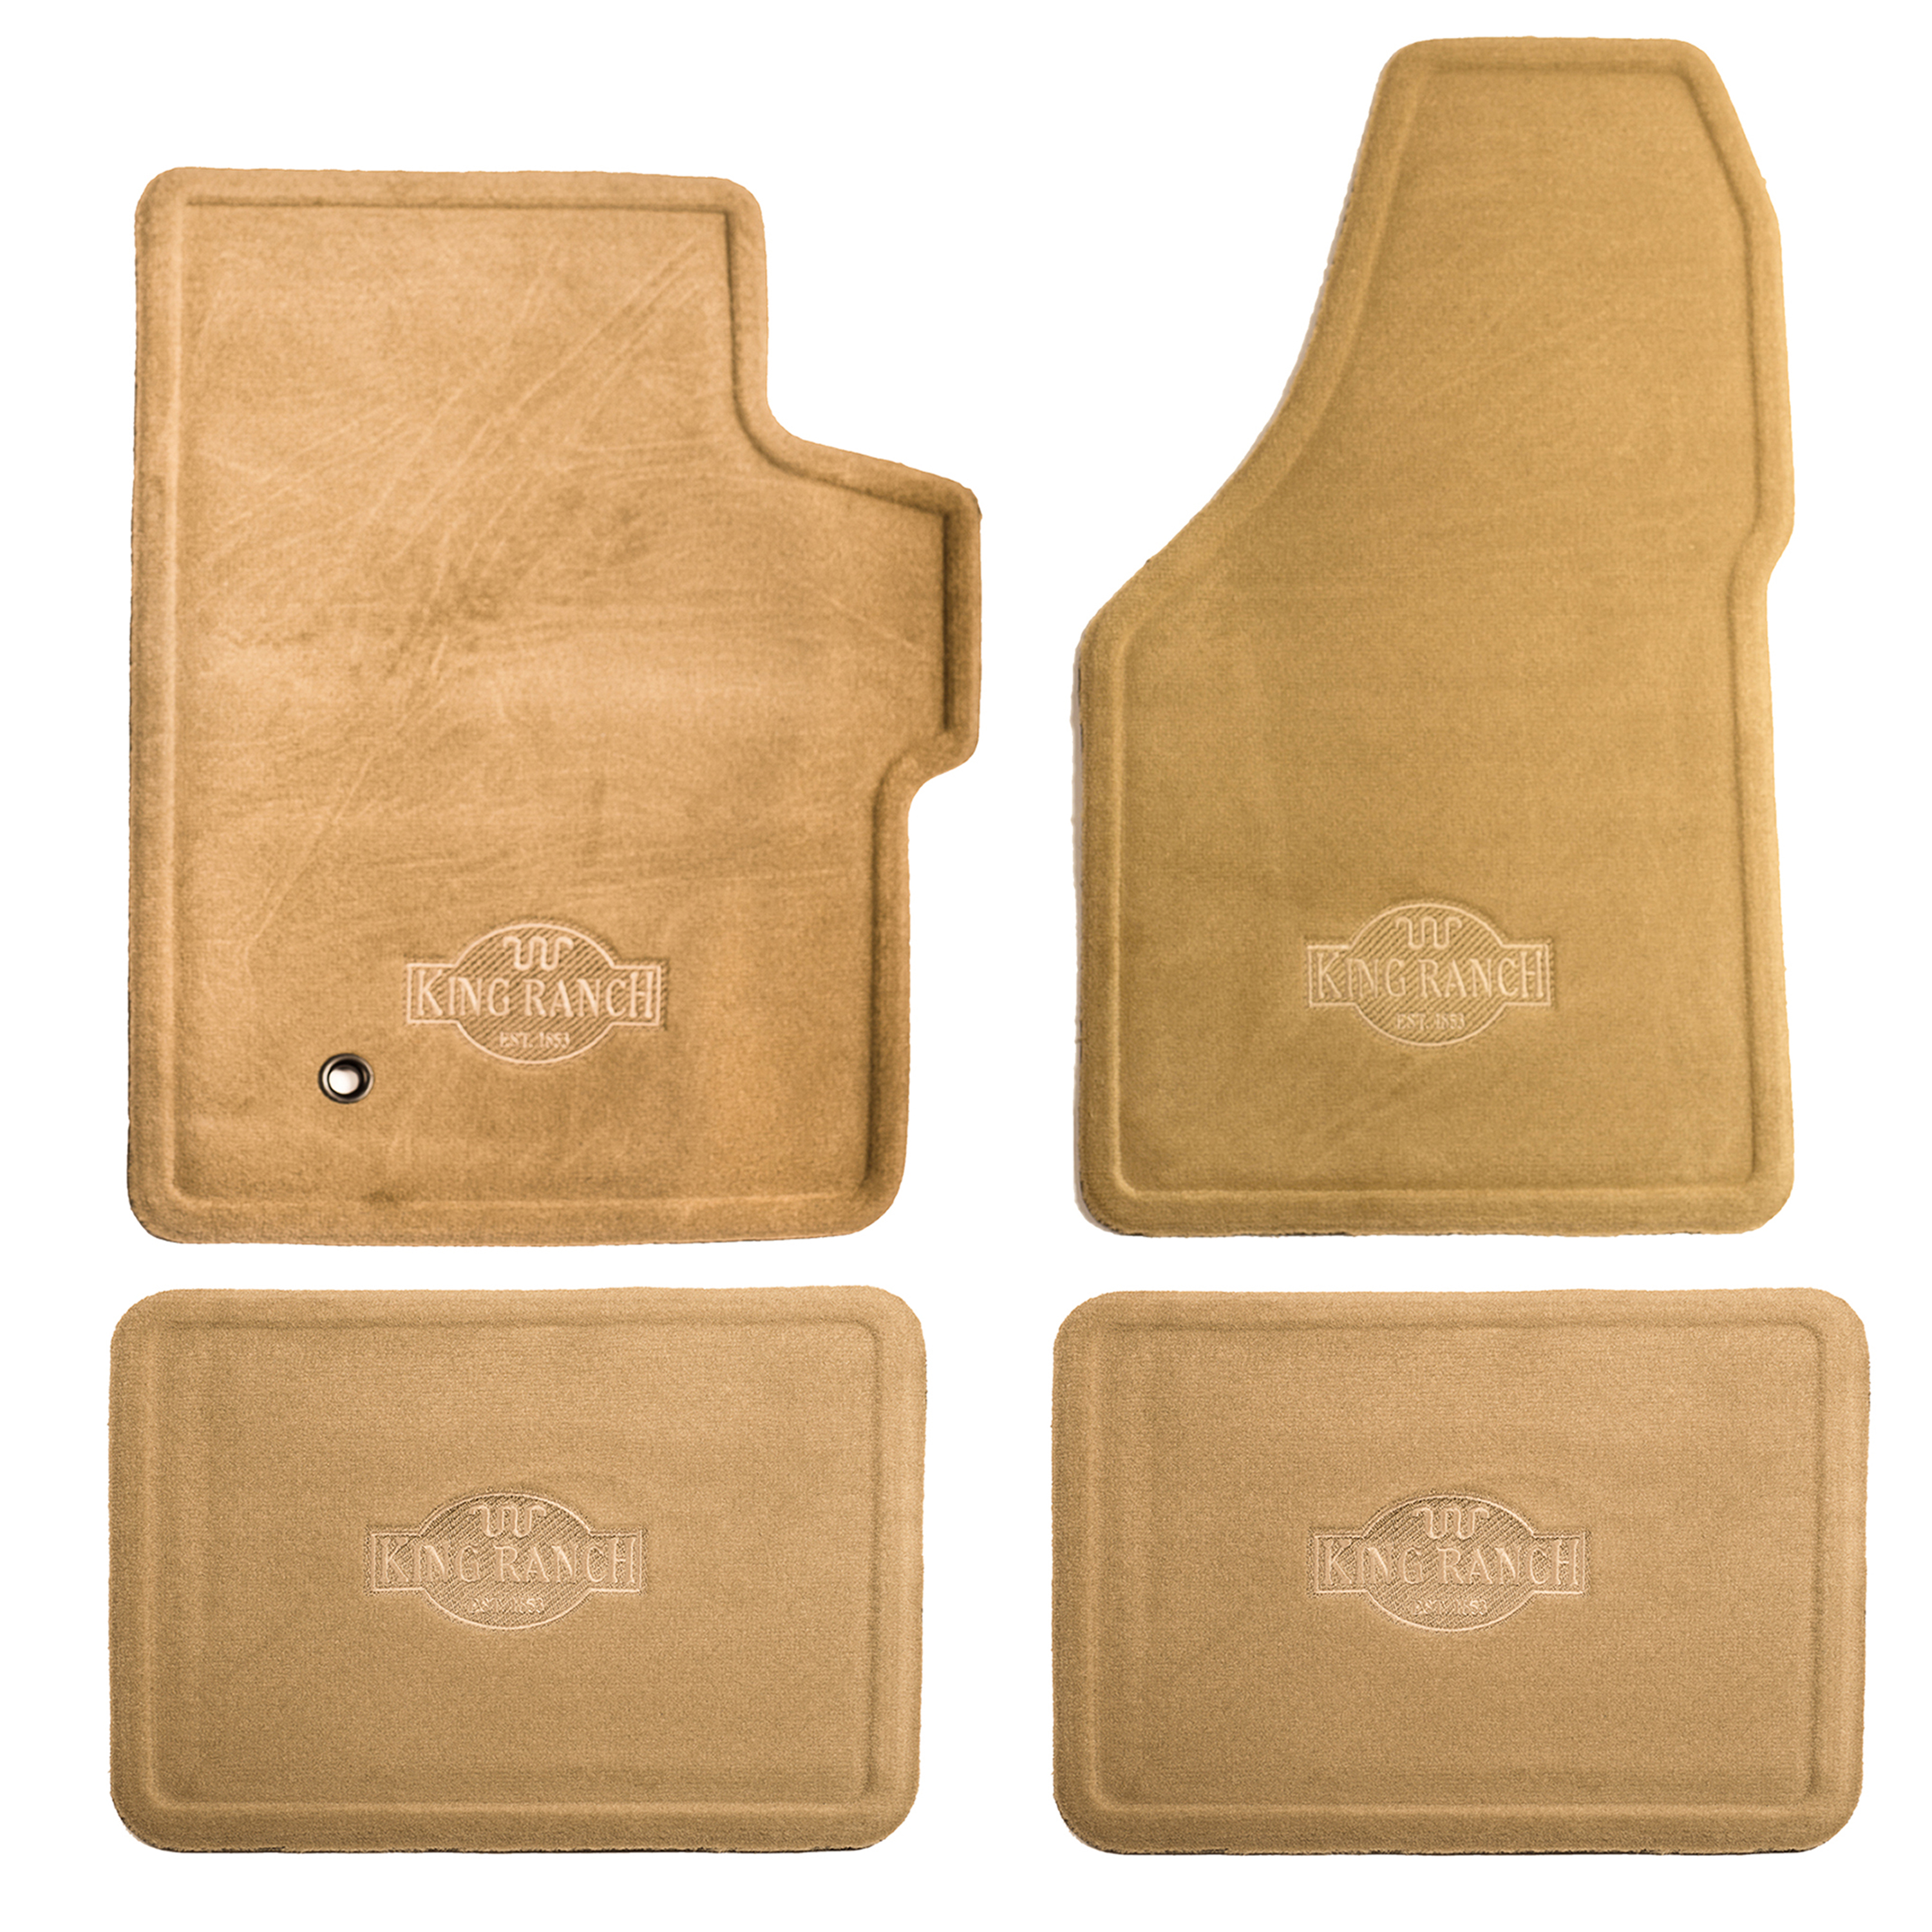 2005-2007 Ford F250 F350 Super Duty King Ranch Carpet